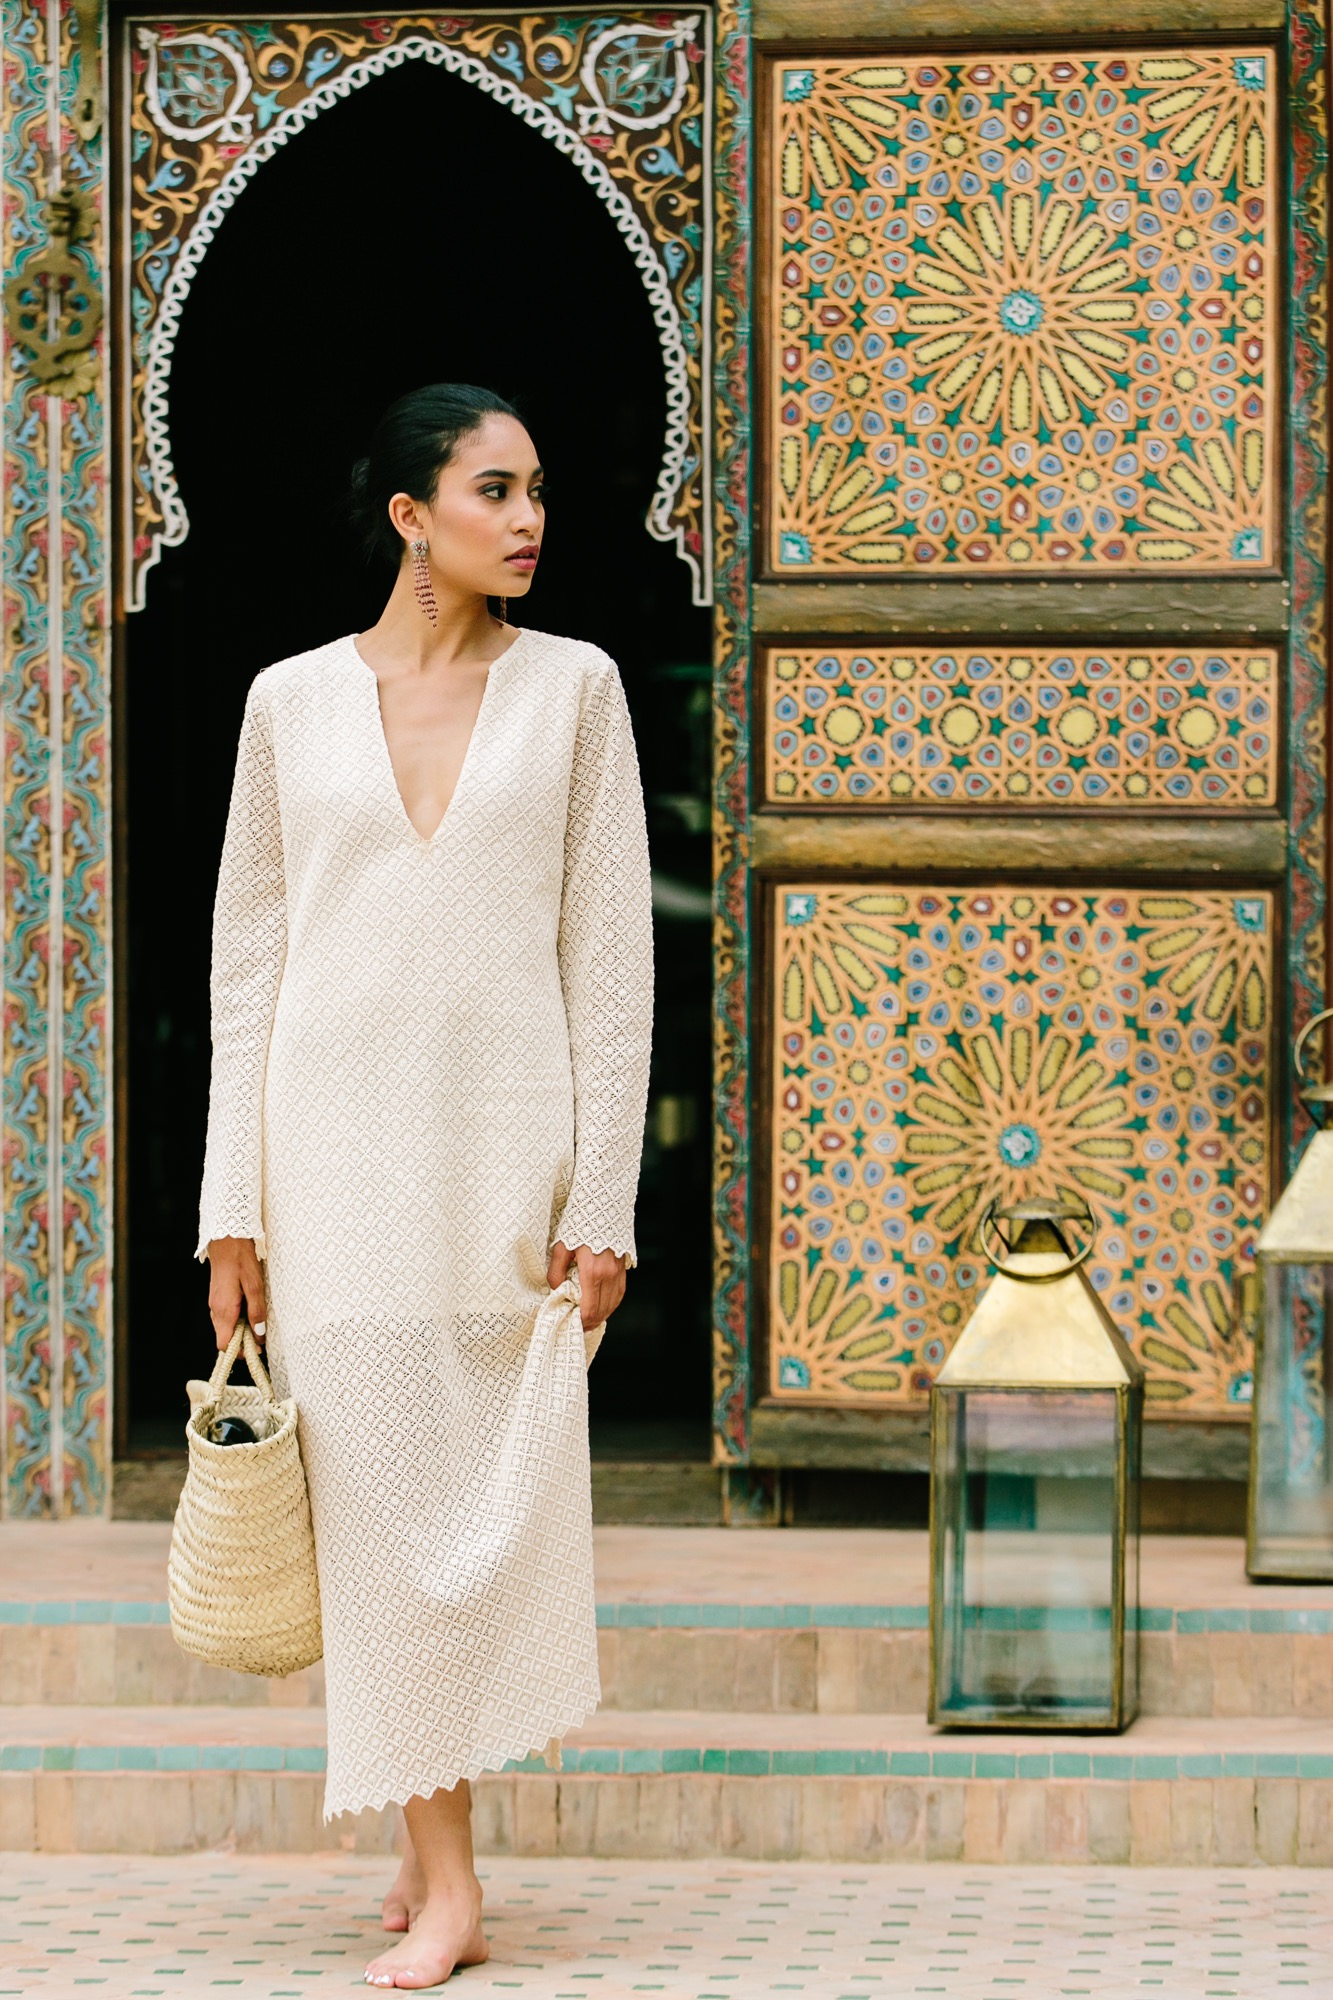 Kaftan, Caftan, Caftan dress, Moroccan door